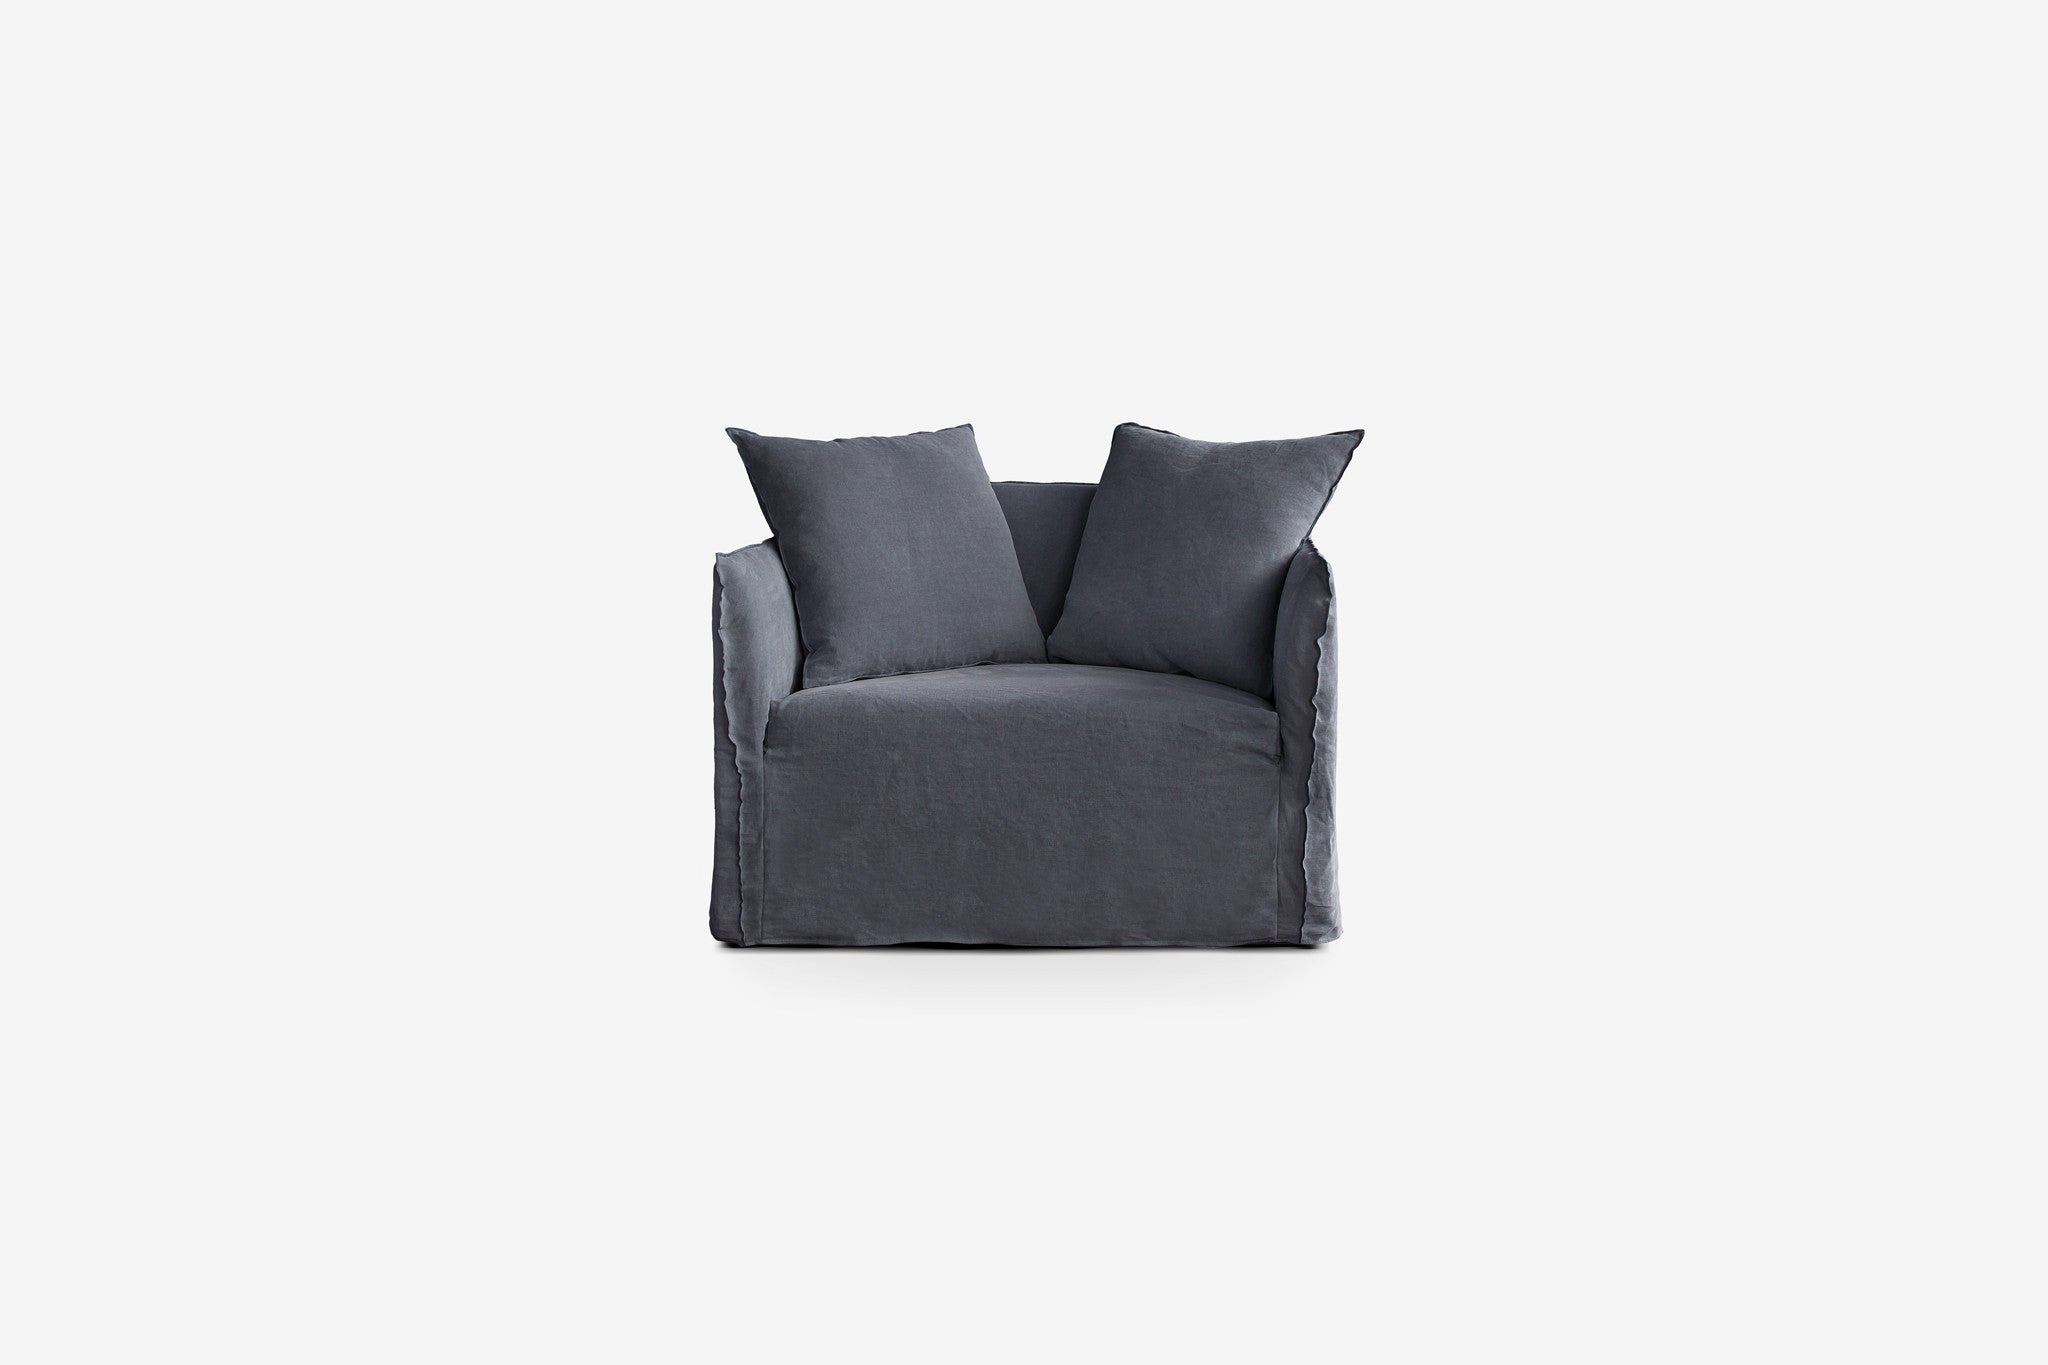 residence loveseat buddha bean inspiration impressive your fluffy room buy chair living for with bag